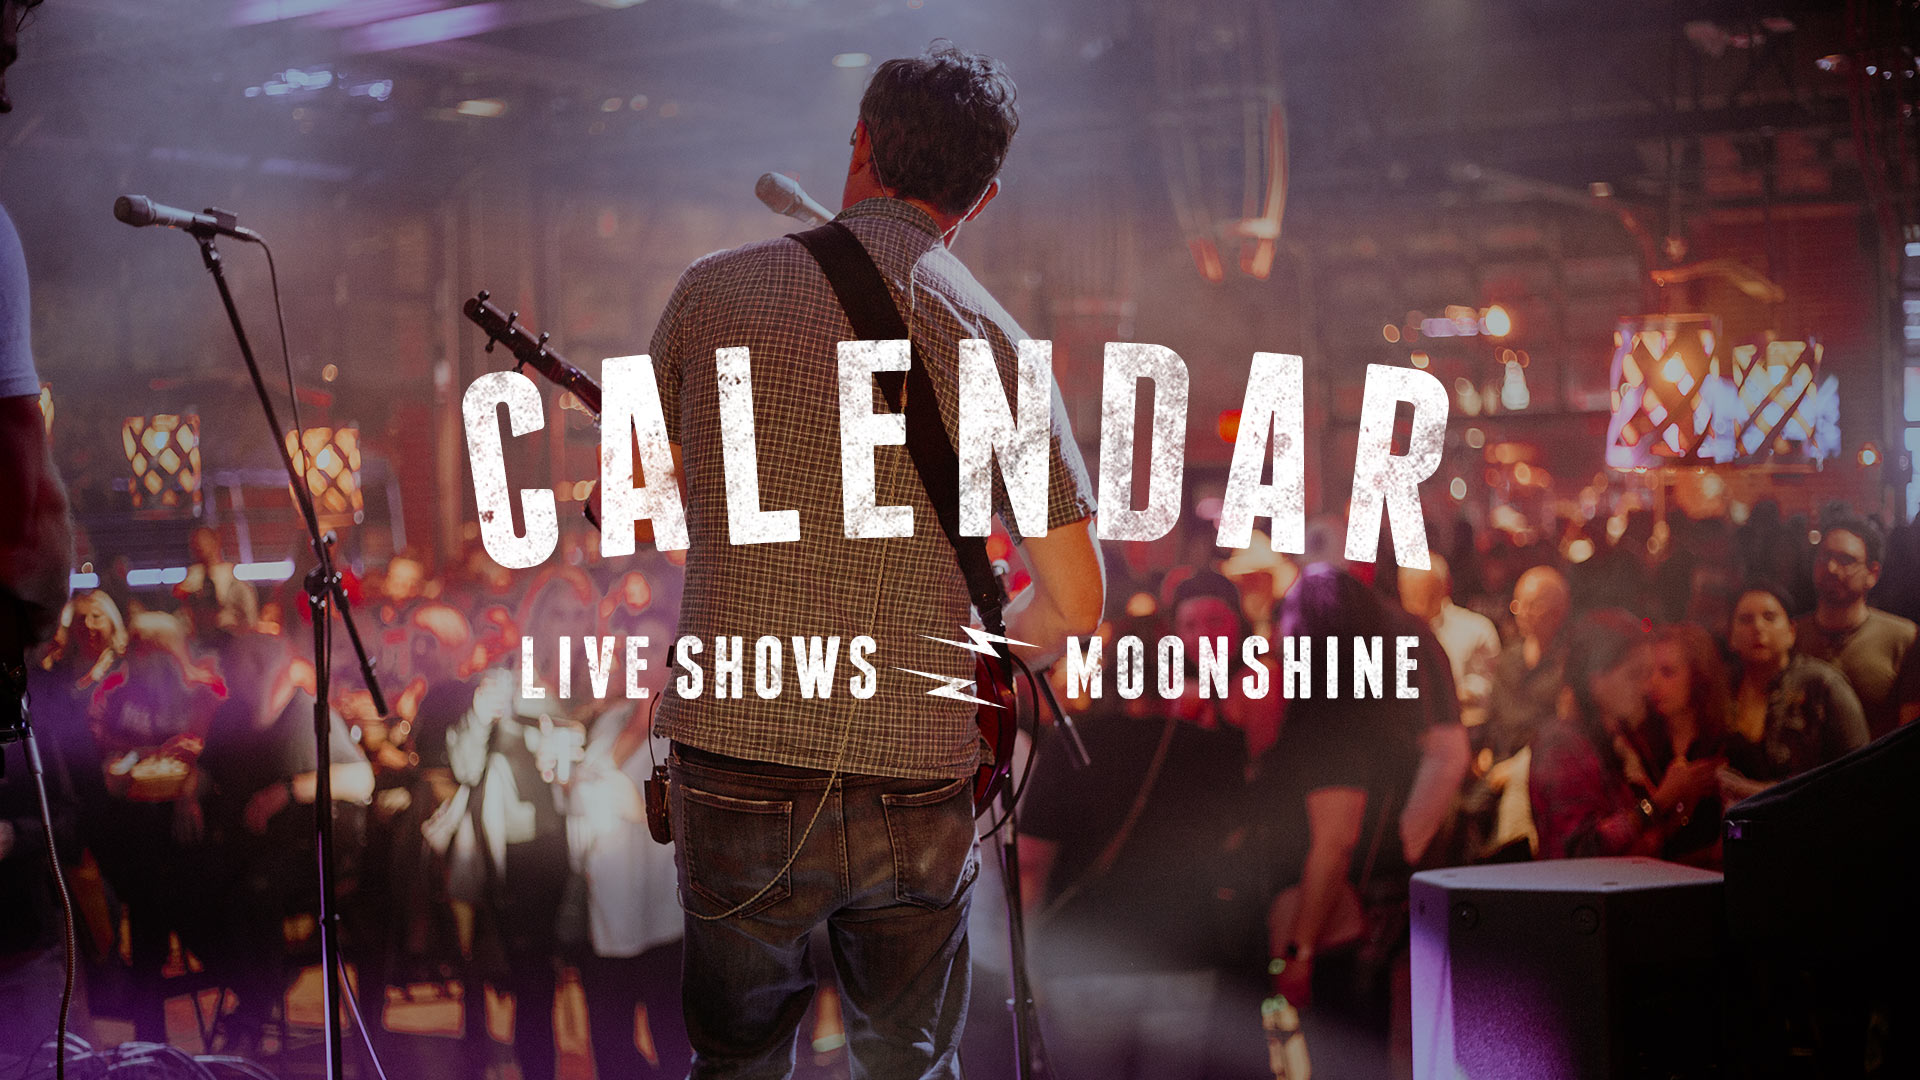 Calender, Liveshows and Moonshine, See you at the show!